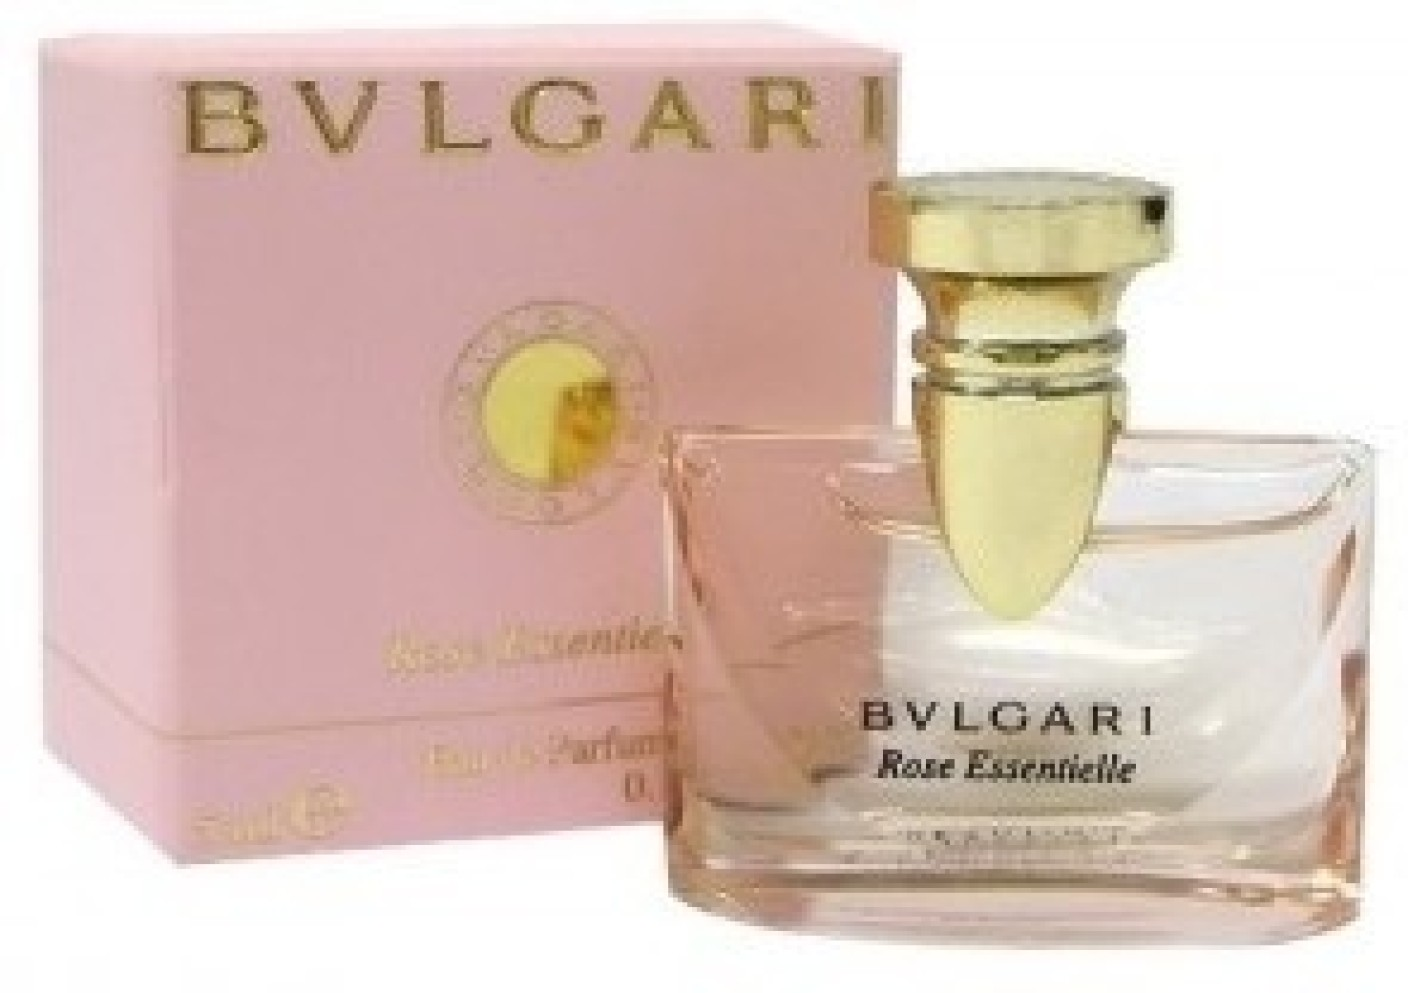 Bvlgari Rose Essentielle 100ml Collectible Crystal Figurines And Gifts